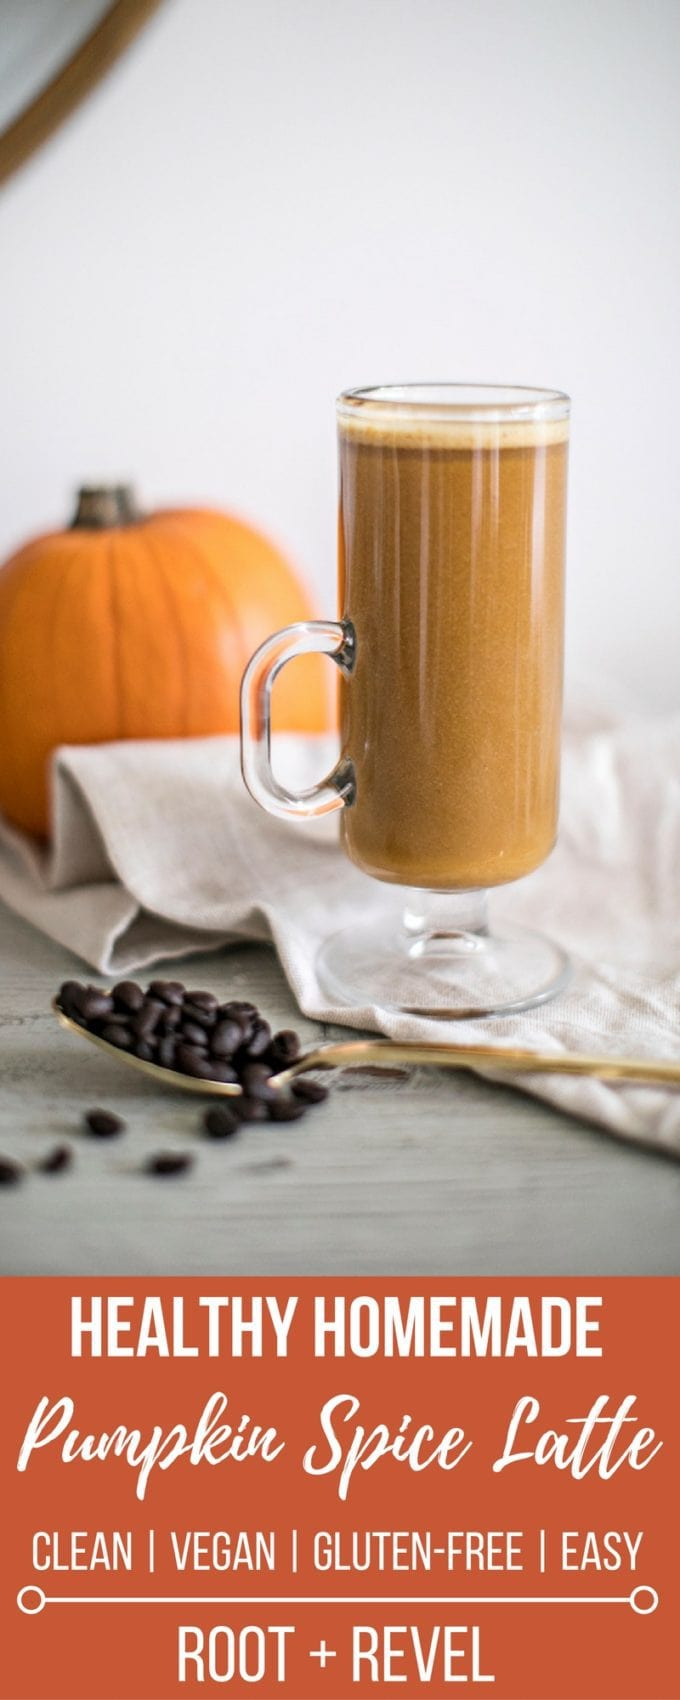 This homemade healthy pumpkin spice latte recipe is a clean alternative to Starbucks that's perfect for Fall. It's made with six simple ingredients like coffee and real pumpkin, is refined sugar-free and high in Vitamin A and omega-3s. This dairy-free, vegan and gluten-free recipe is super easy and affordable to make at home, too!